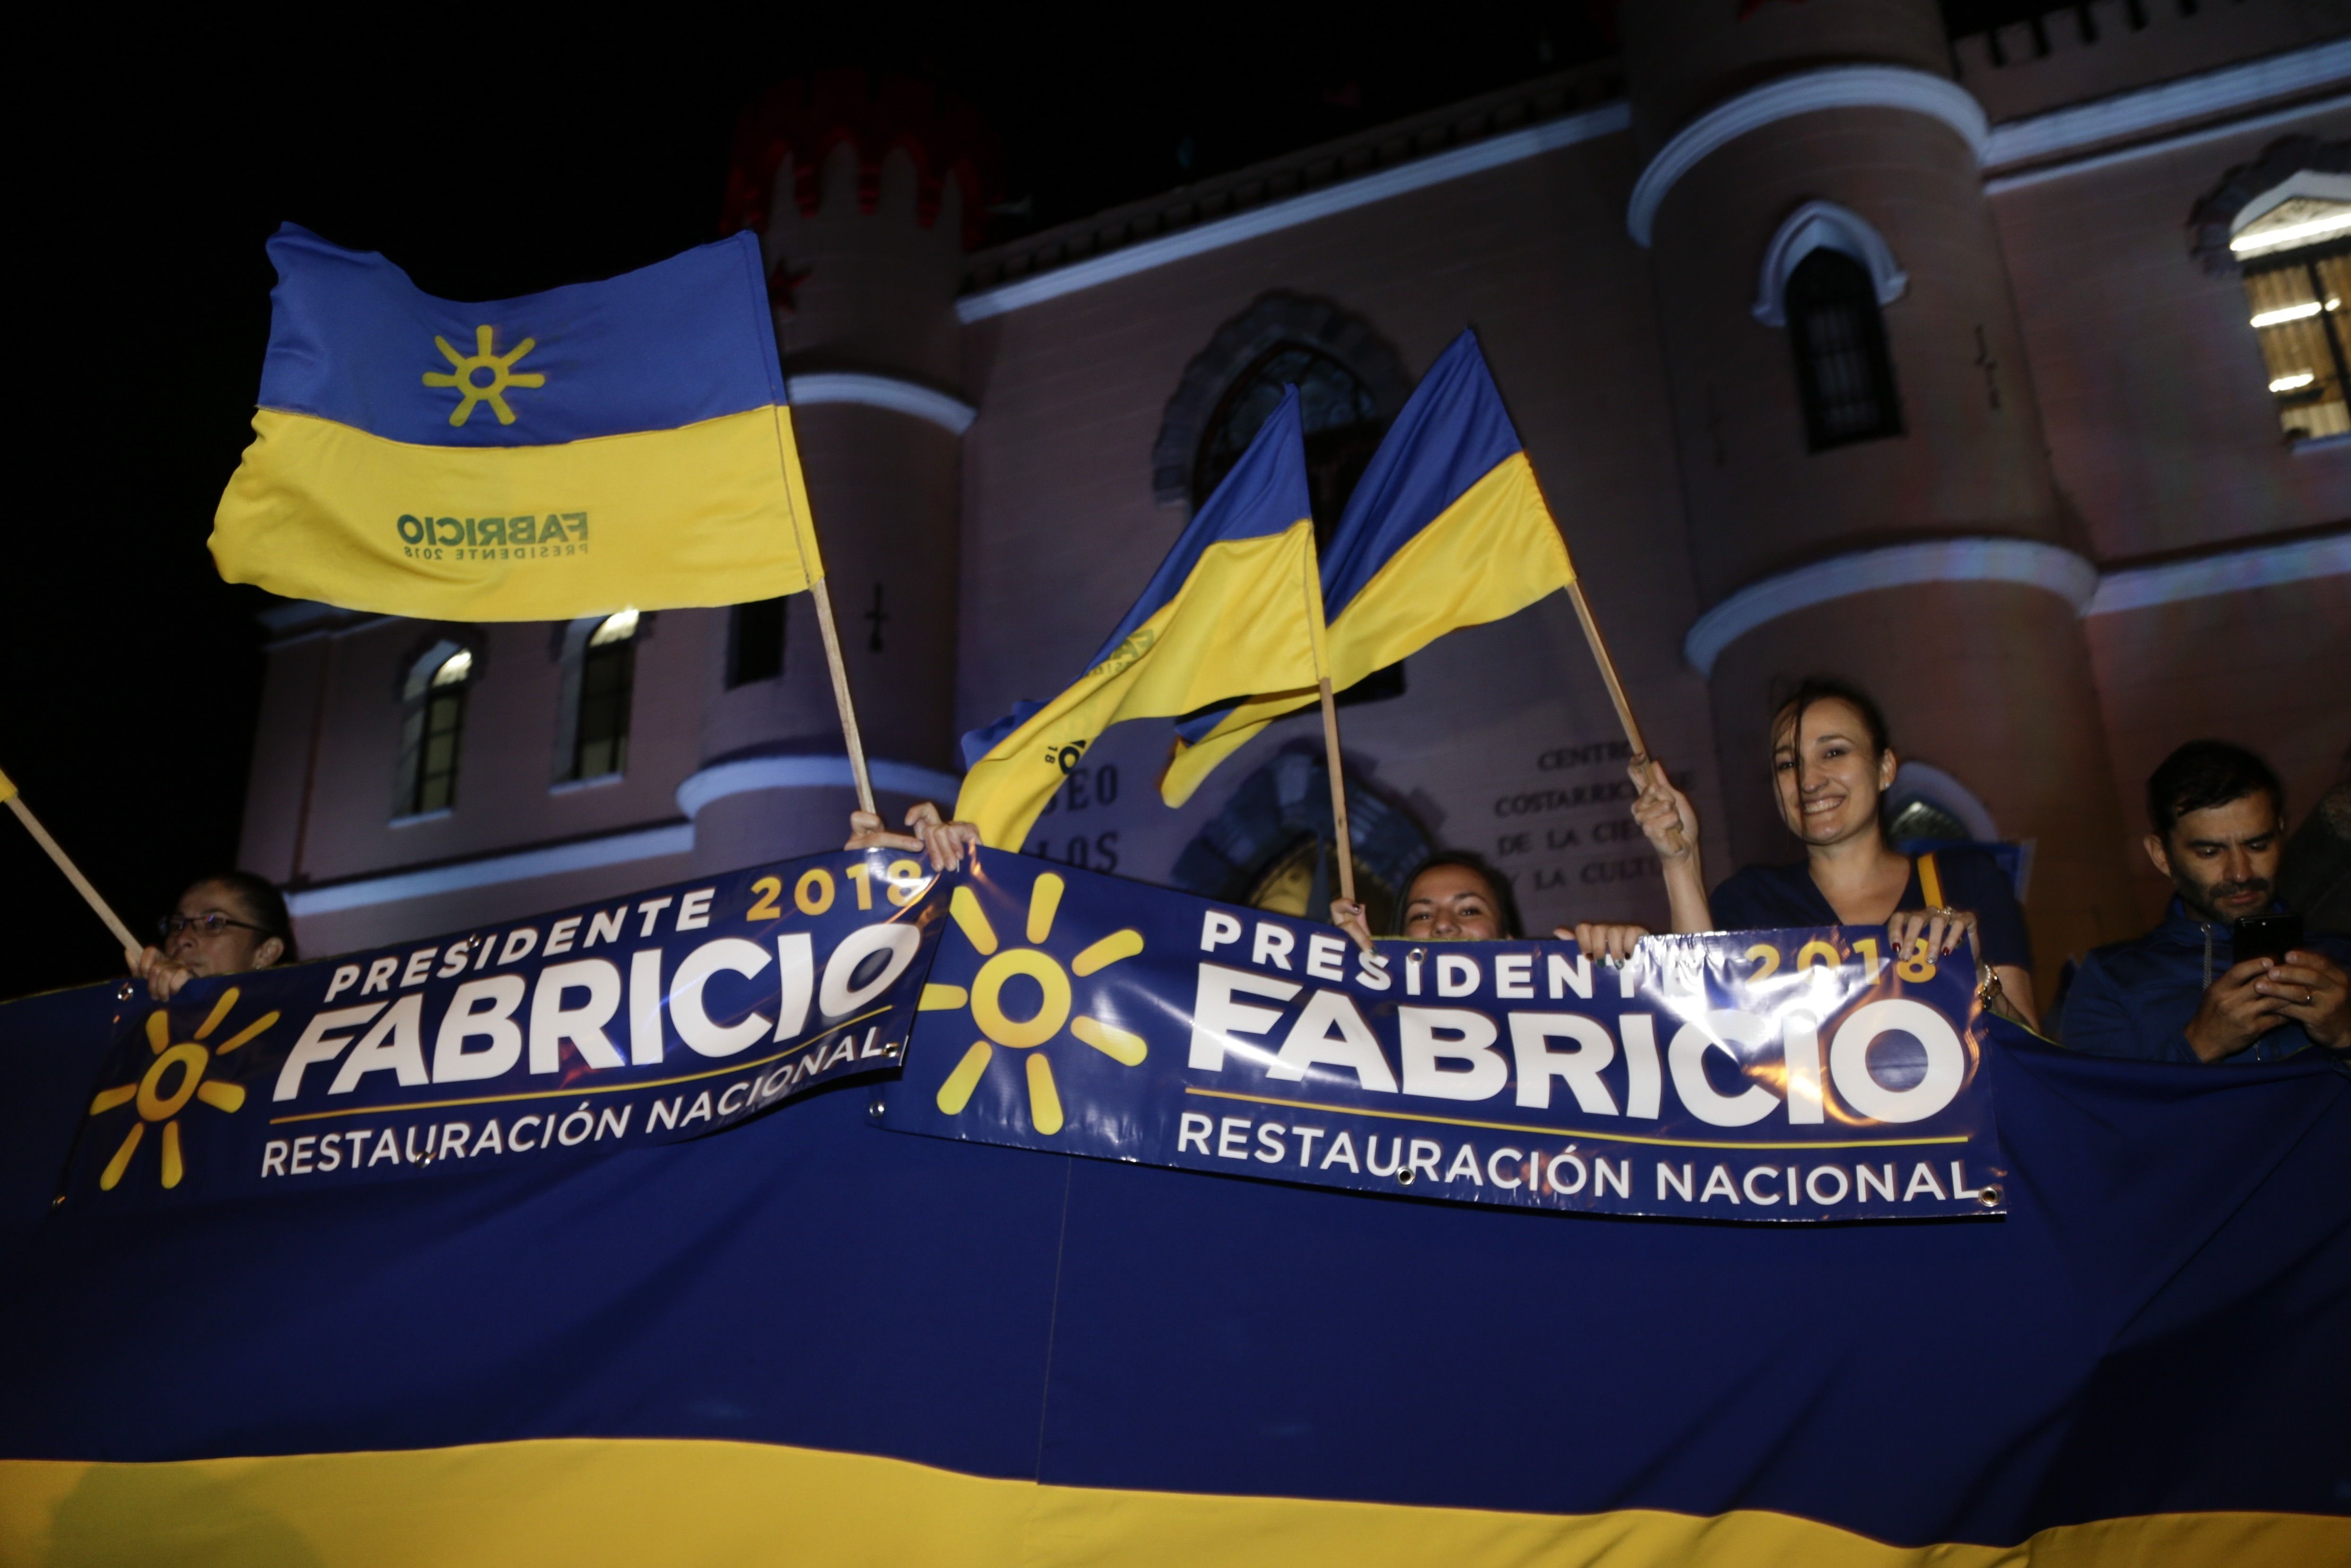 Supporters of presidential candidate Fabricio Alvarado with the National Restoration party gather before a debate ahead of the presidential election in San Jose, Costa Rica, Feb. 1, 2018. Costa Ricans head to the polls Sunday.